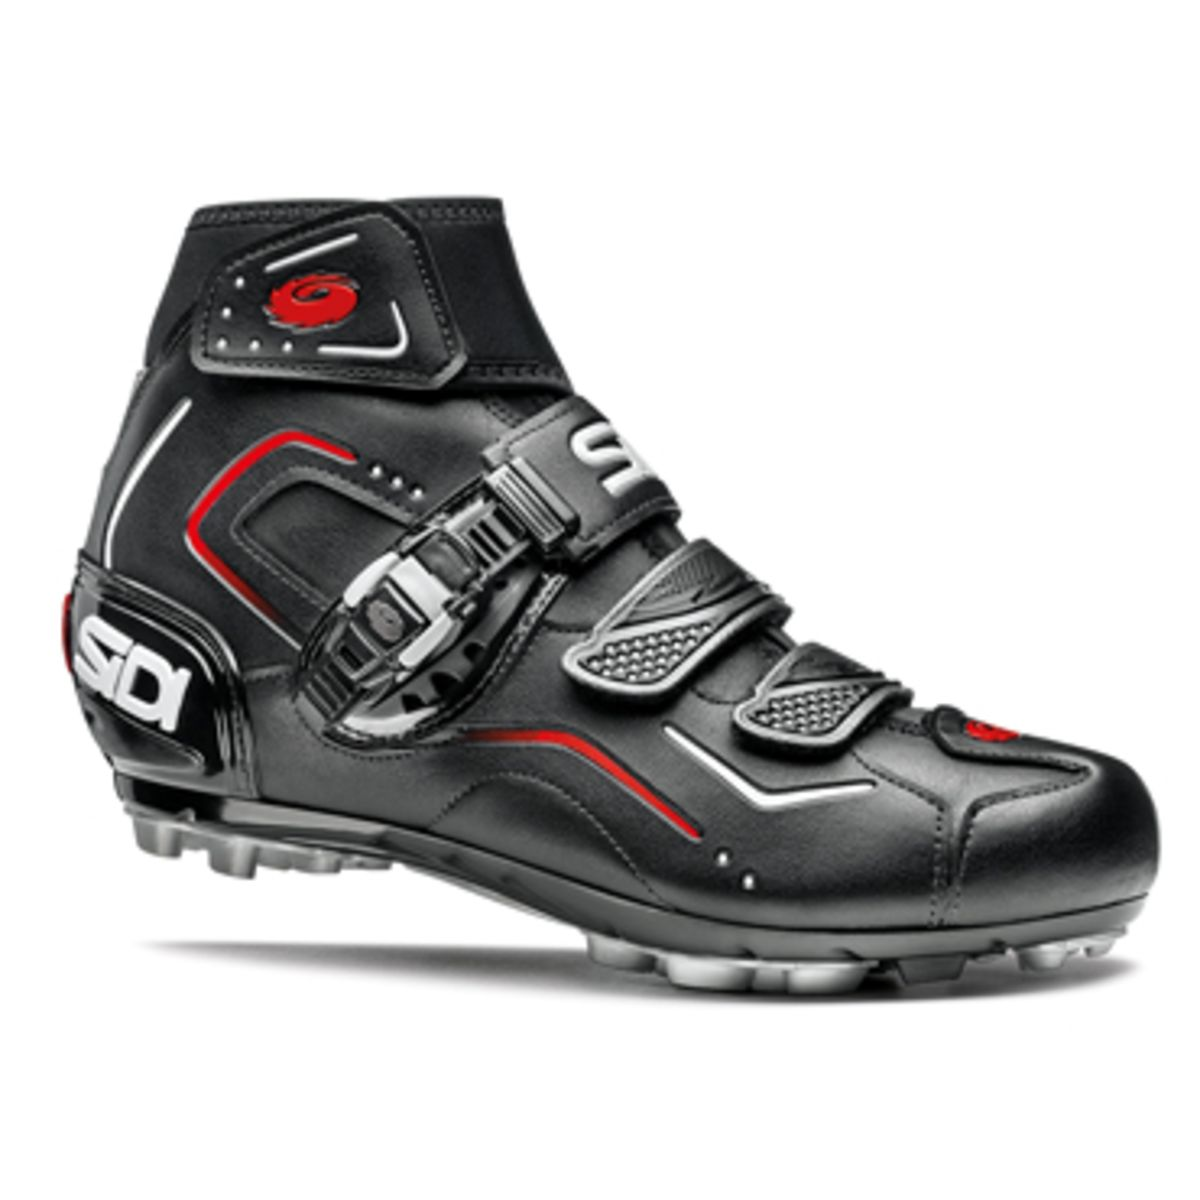 BREEZE RAIN Winter MTB-Schuhe